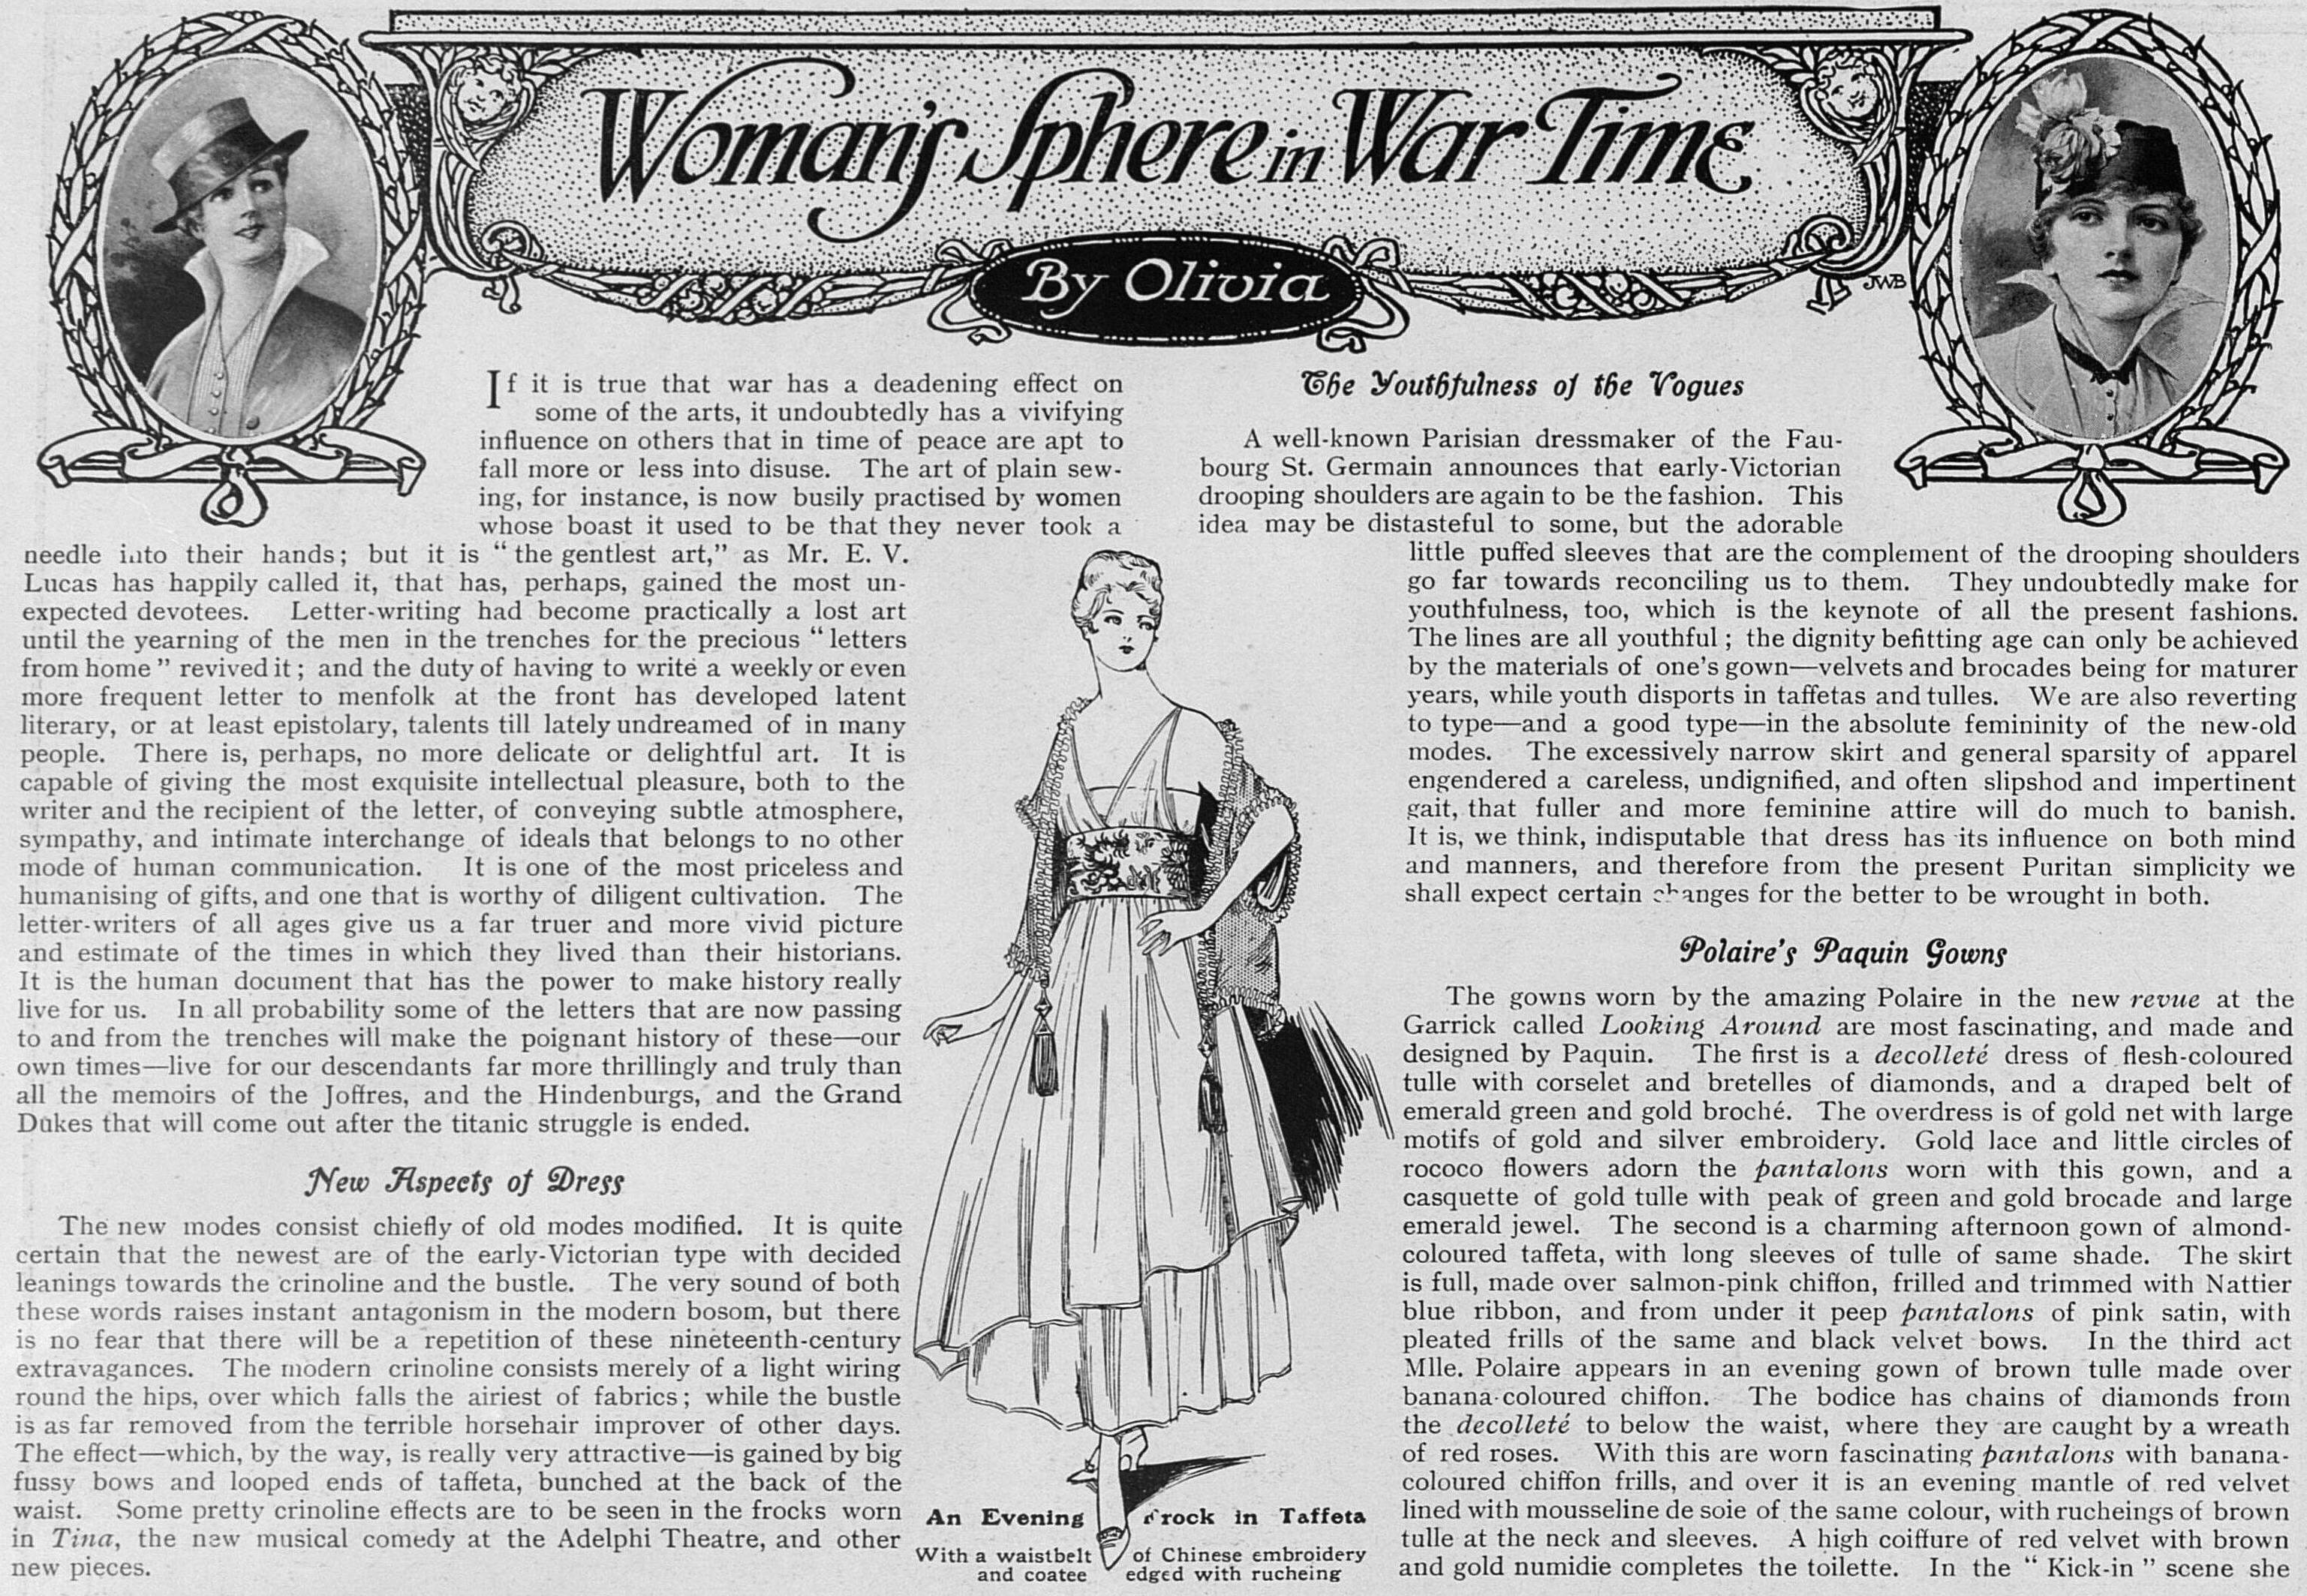 WomansSphereInWarTime_20Nov1915